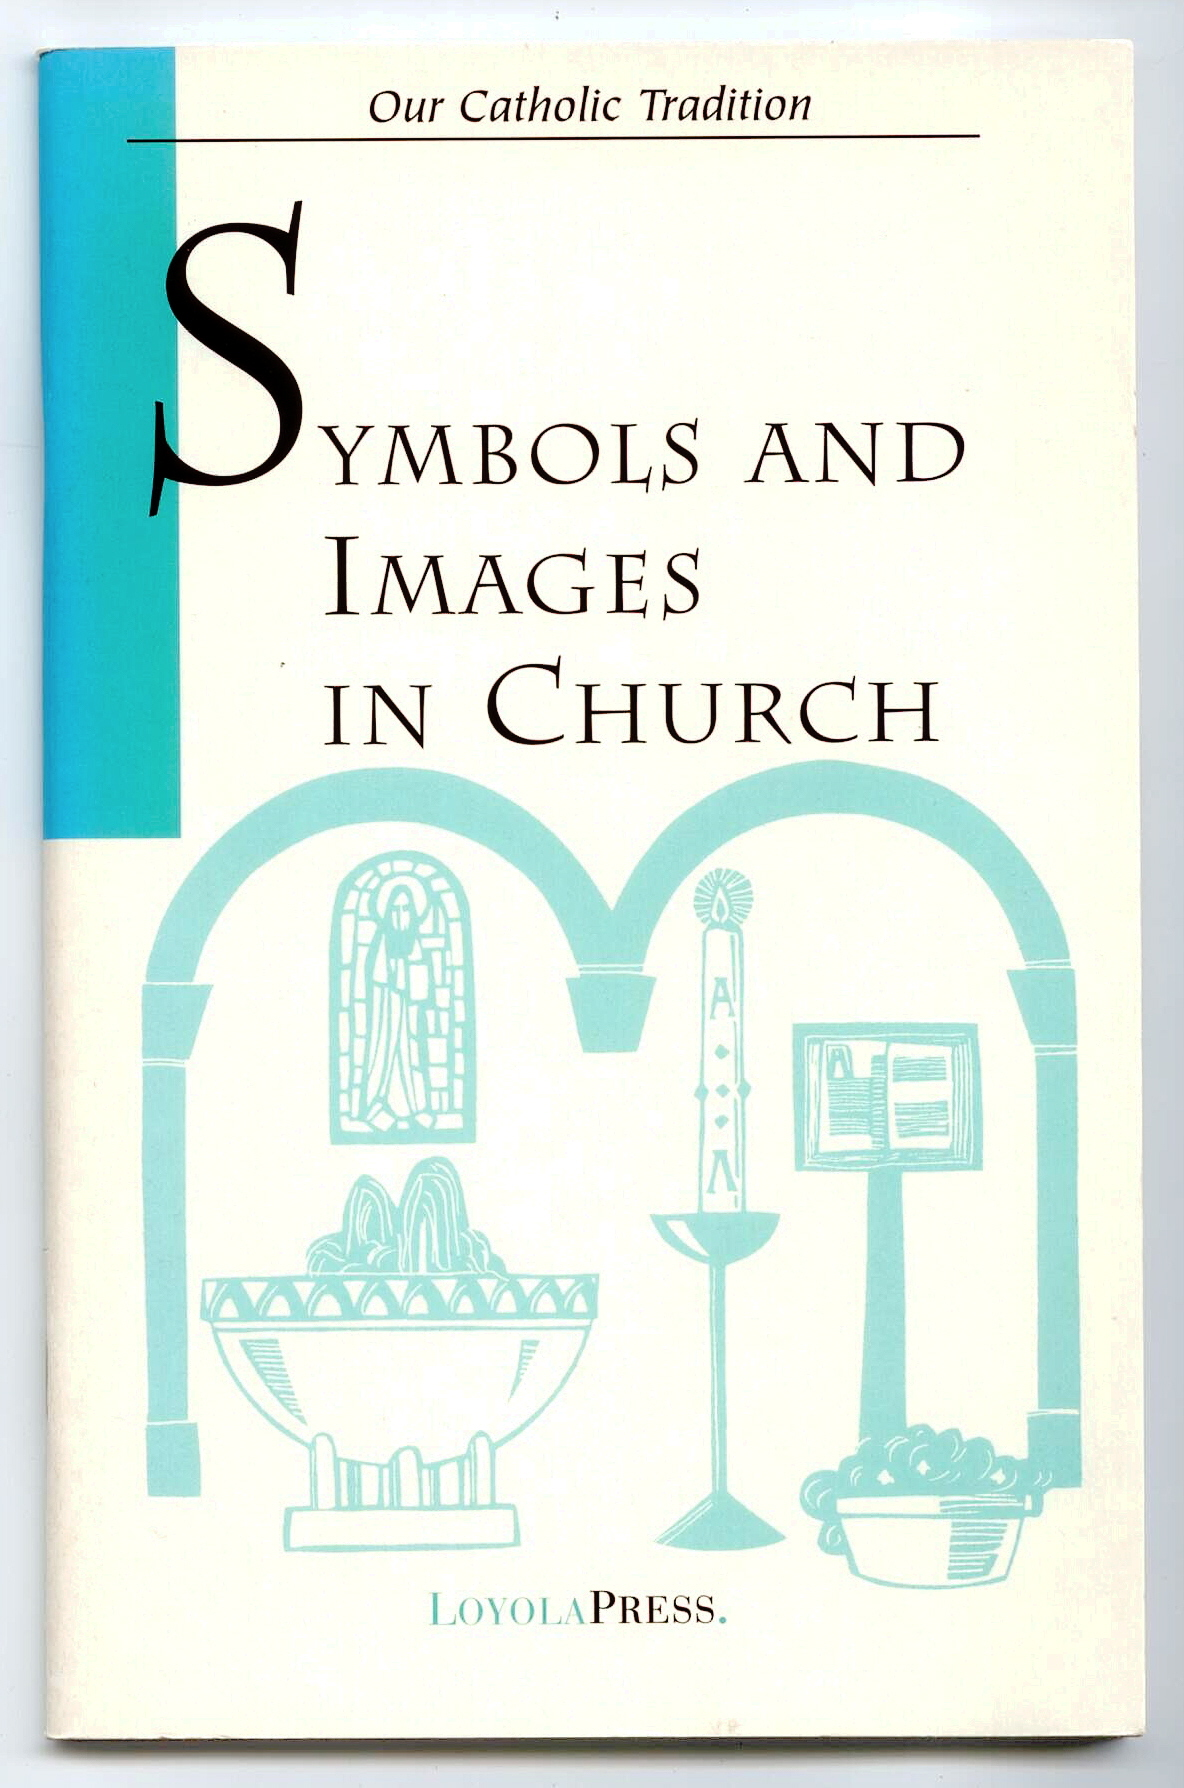 Symbols And Images In Church by James E. Frazier